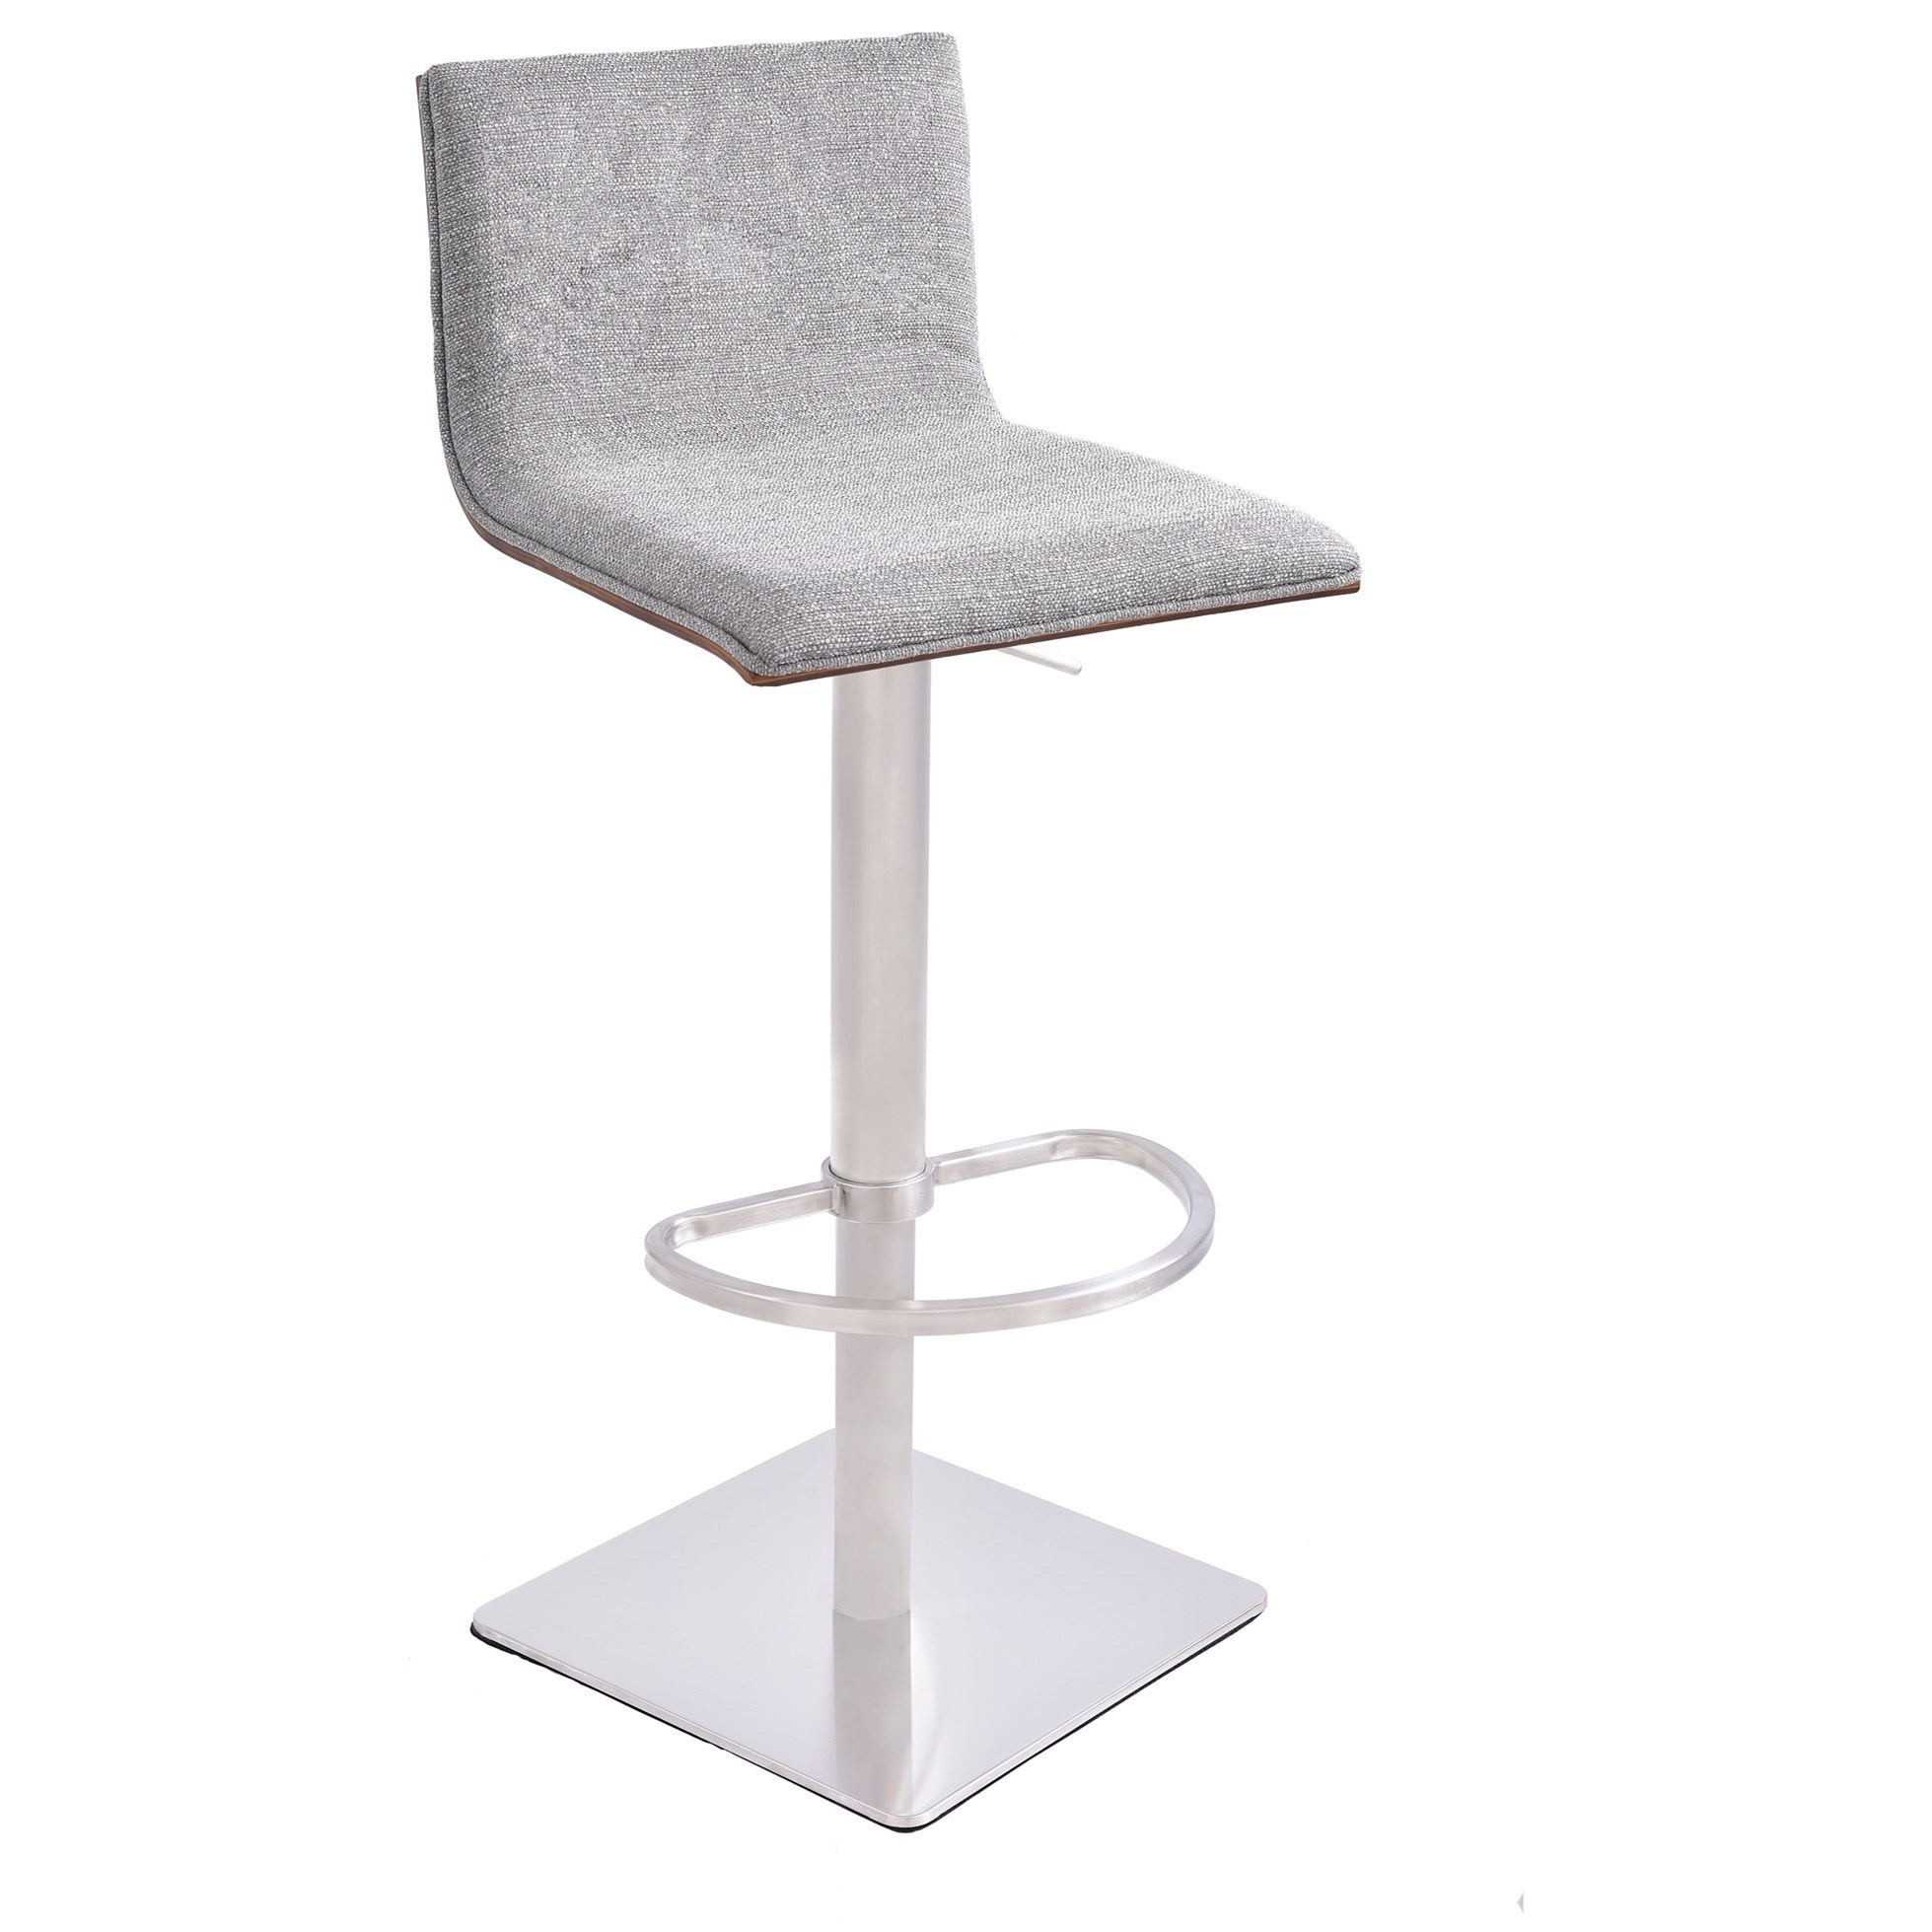 Crystal Adjustable Swivel Barstool at Sadler's Home Furnishings